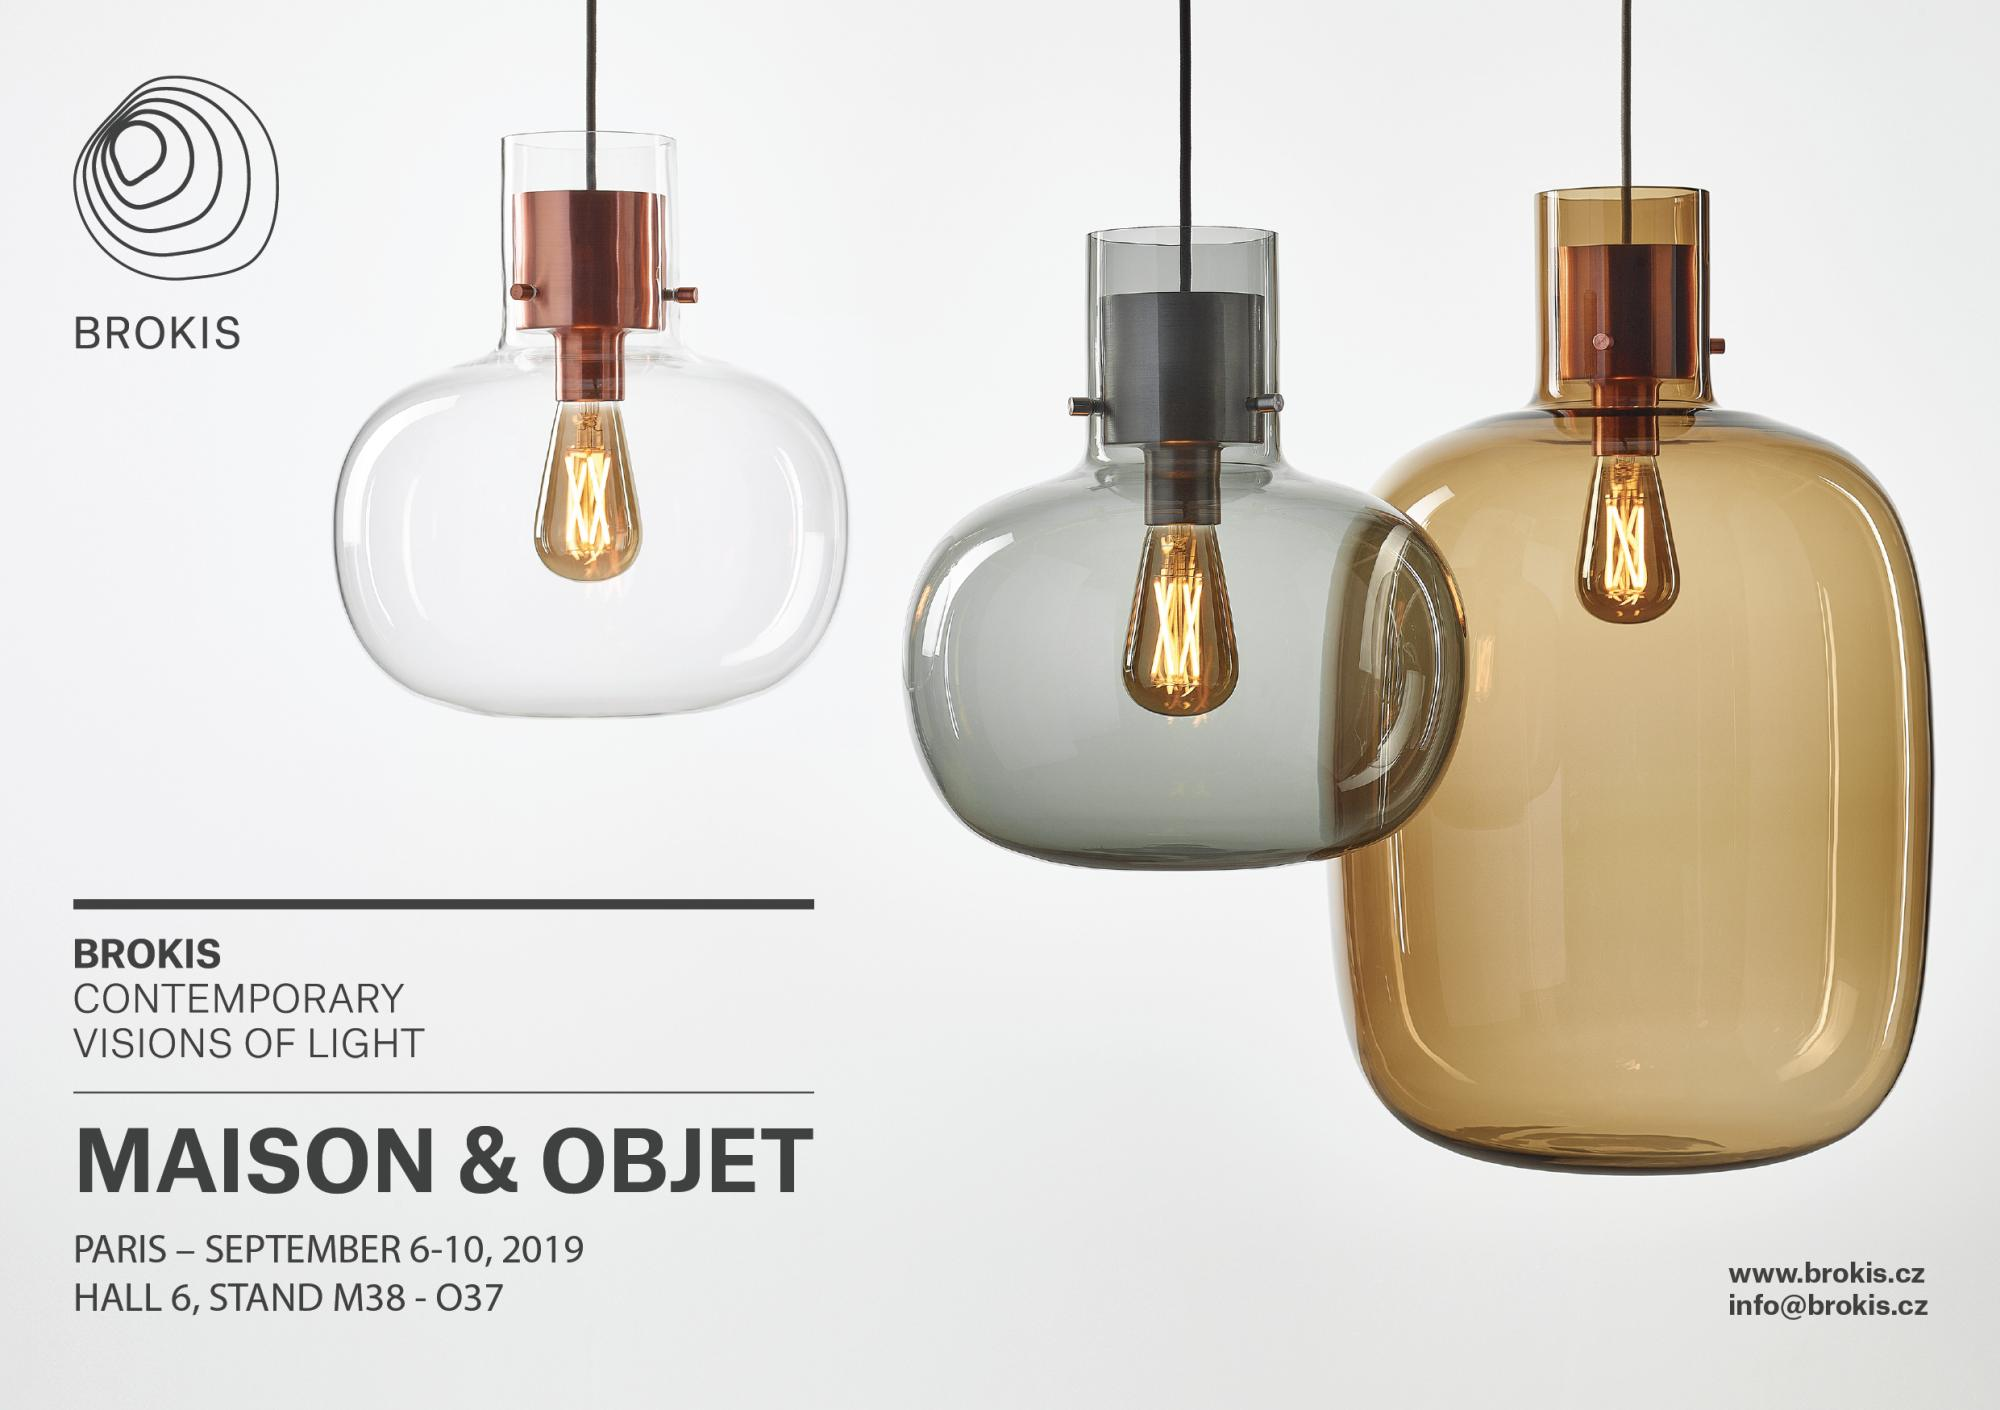 MAISON&OBJET 2019 – PARIS IN A NEW LIGHT TOO